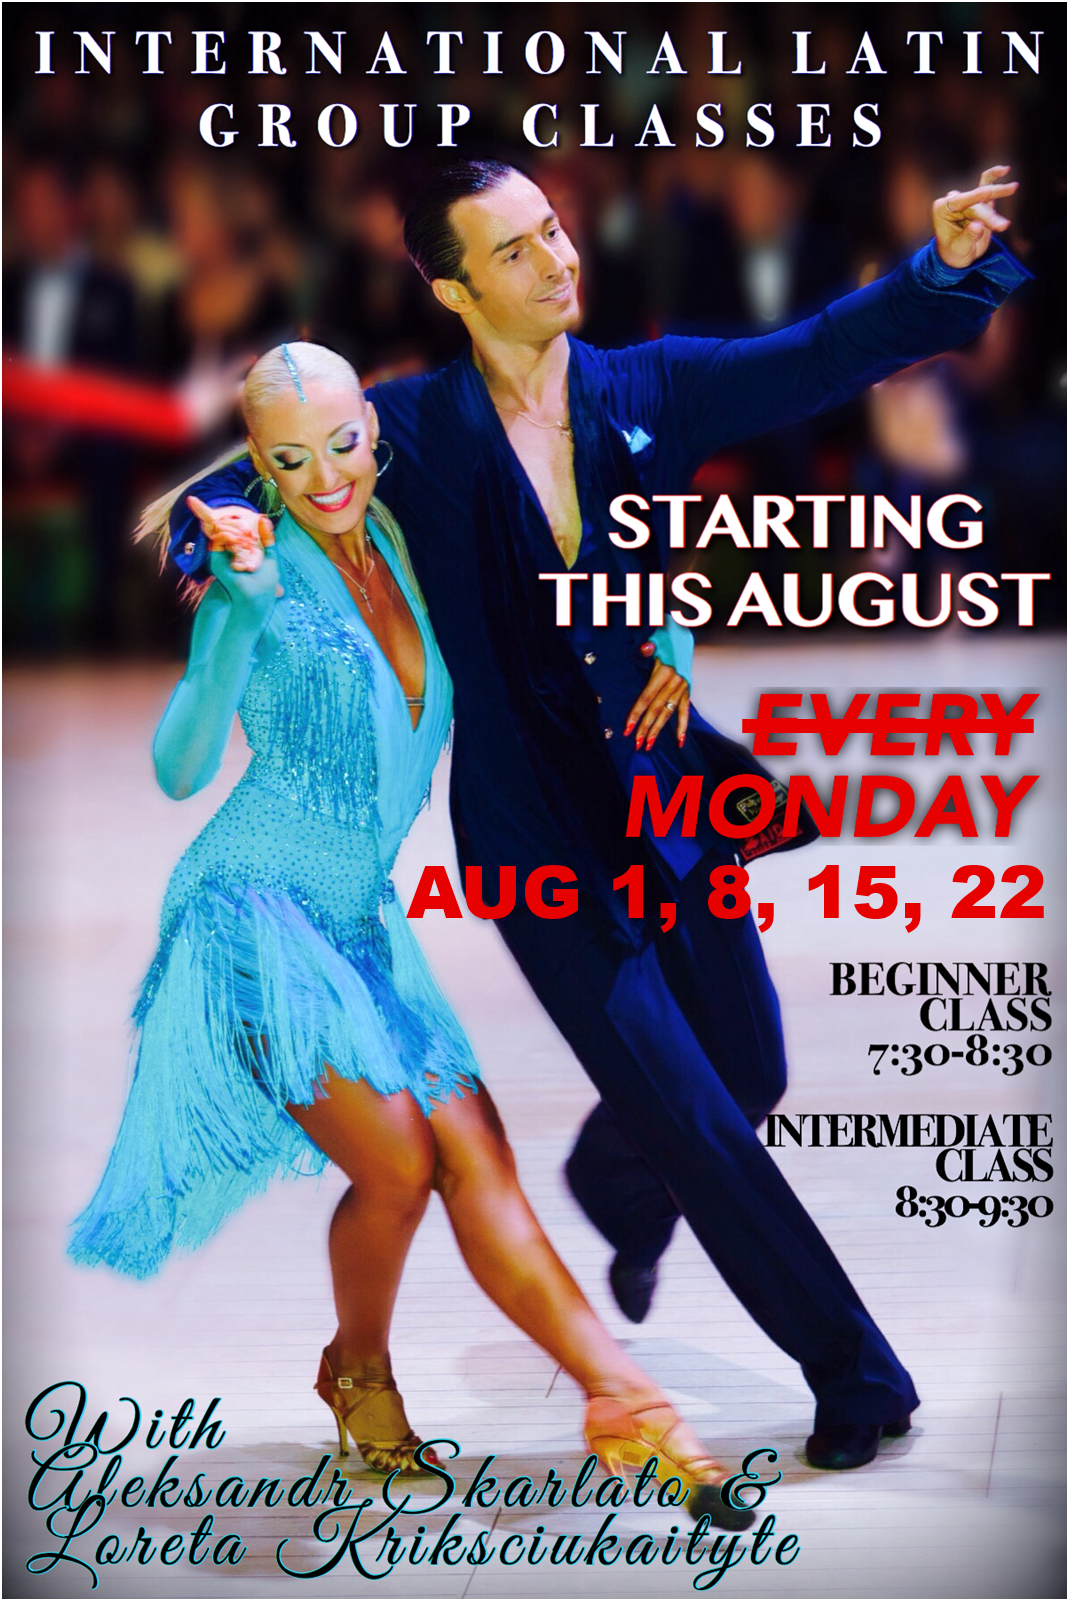 Latin Classes with Aleksandr Skarlato & Loreta Krikscuikaityte - Mondays, August 1, 8, 15, 22